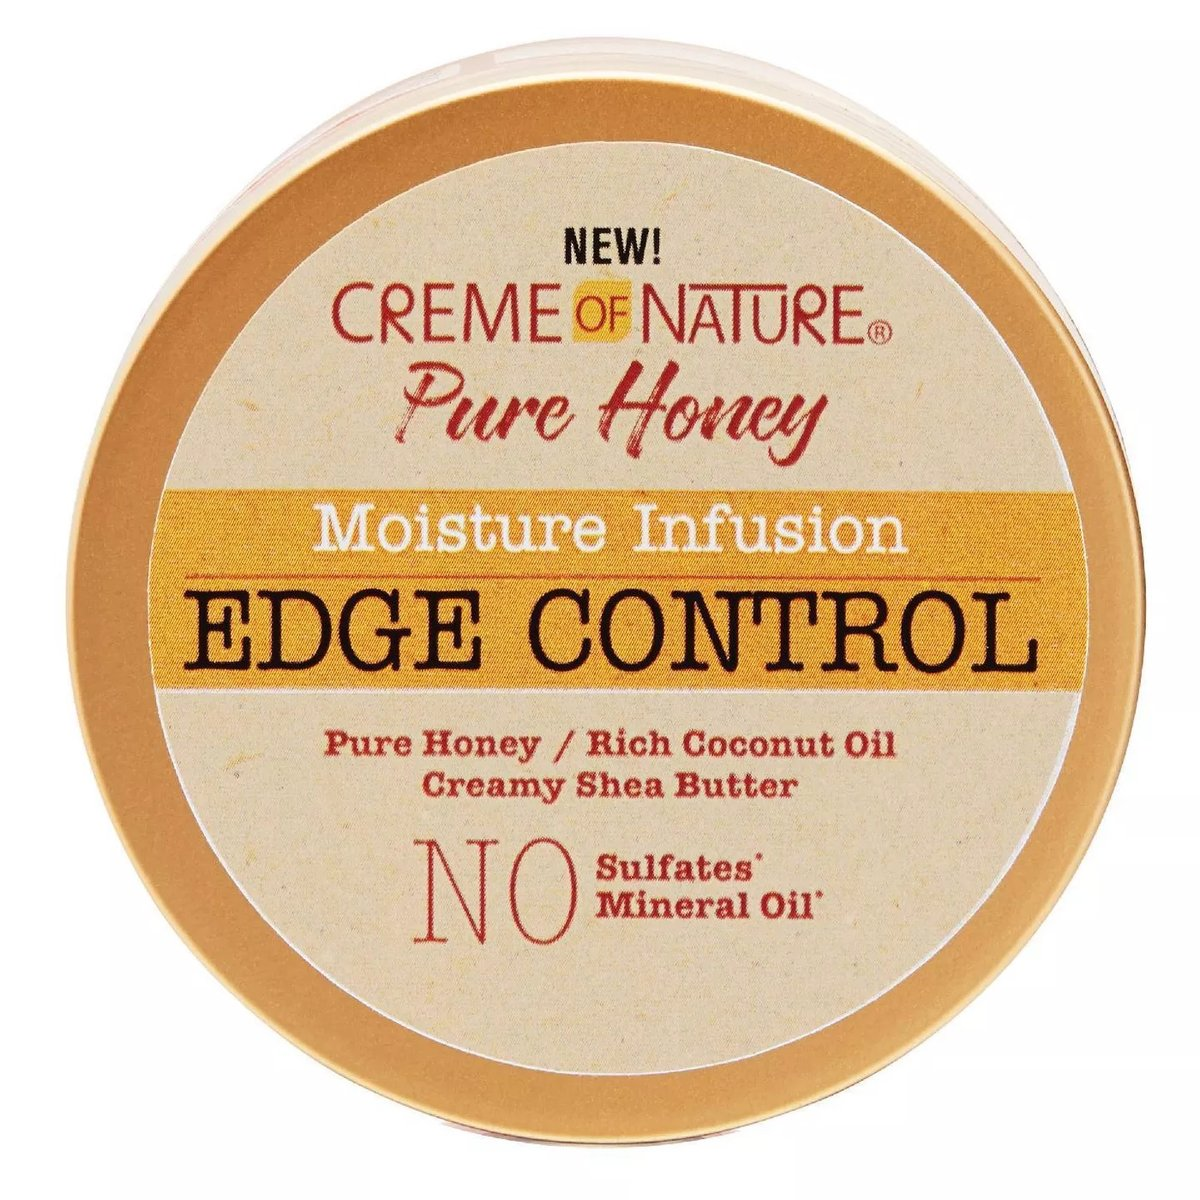 Creme of Nature Pure Honey Moisture Infusion Edge Control - 2.25 fl oz - Beauty Bar & Supply